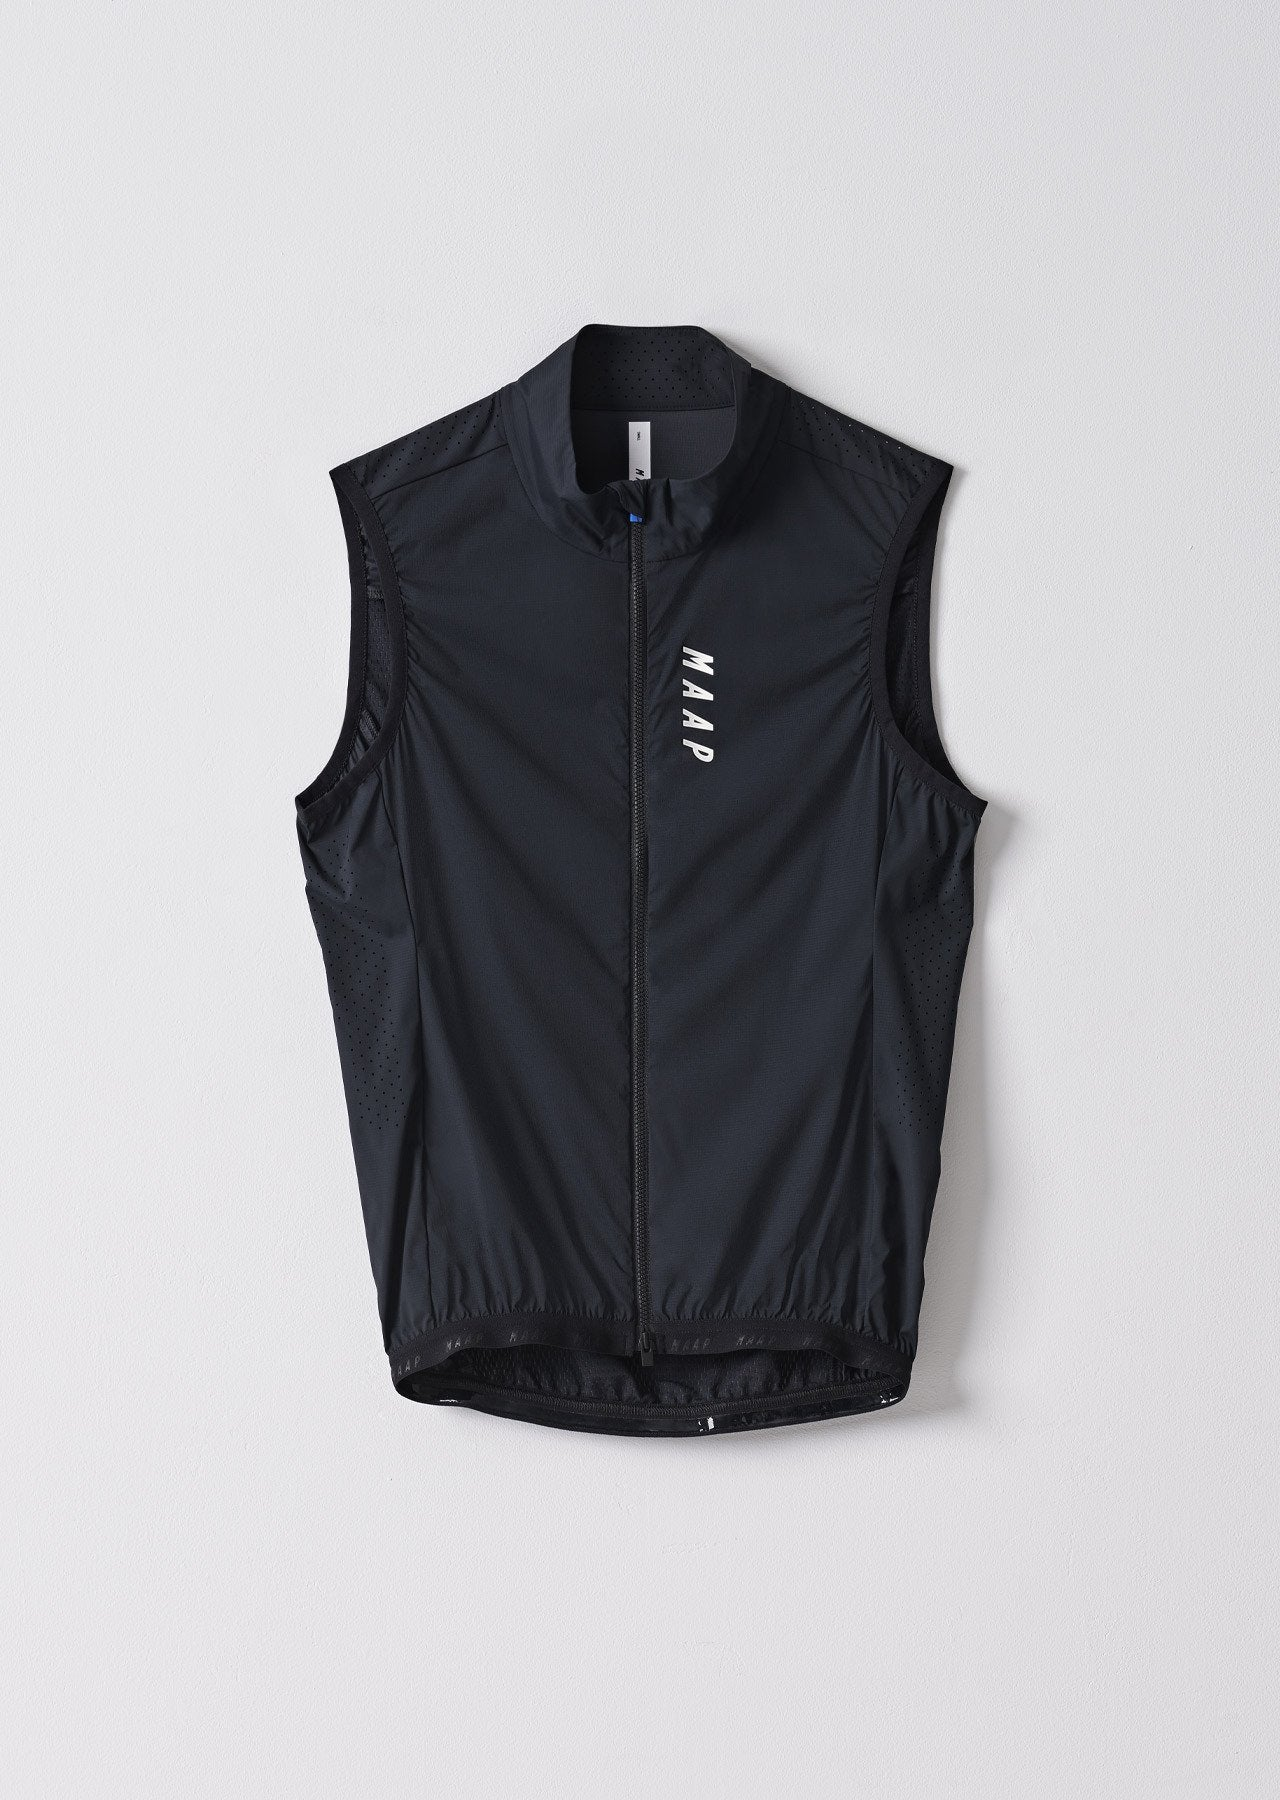 Draft Team Vest